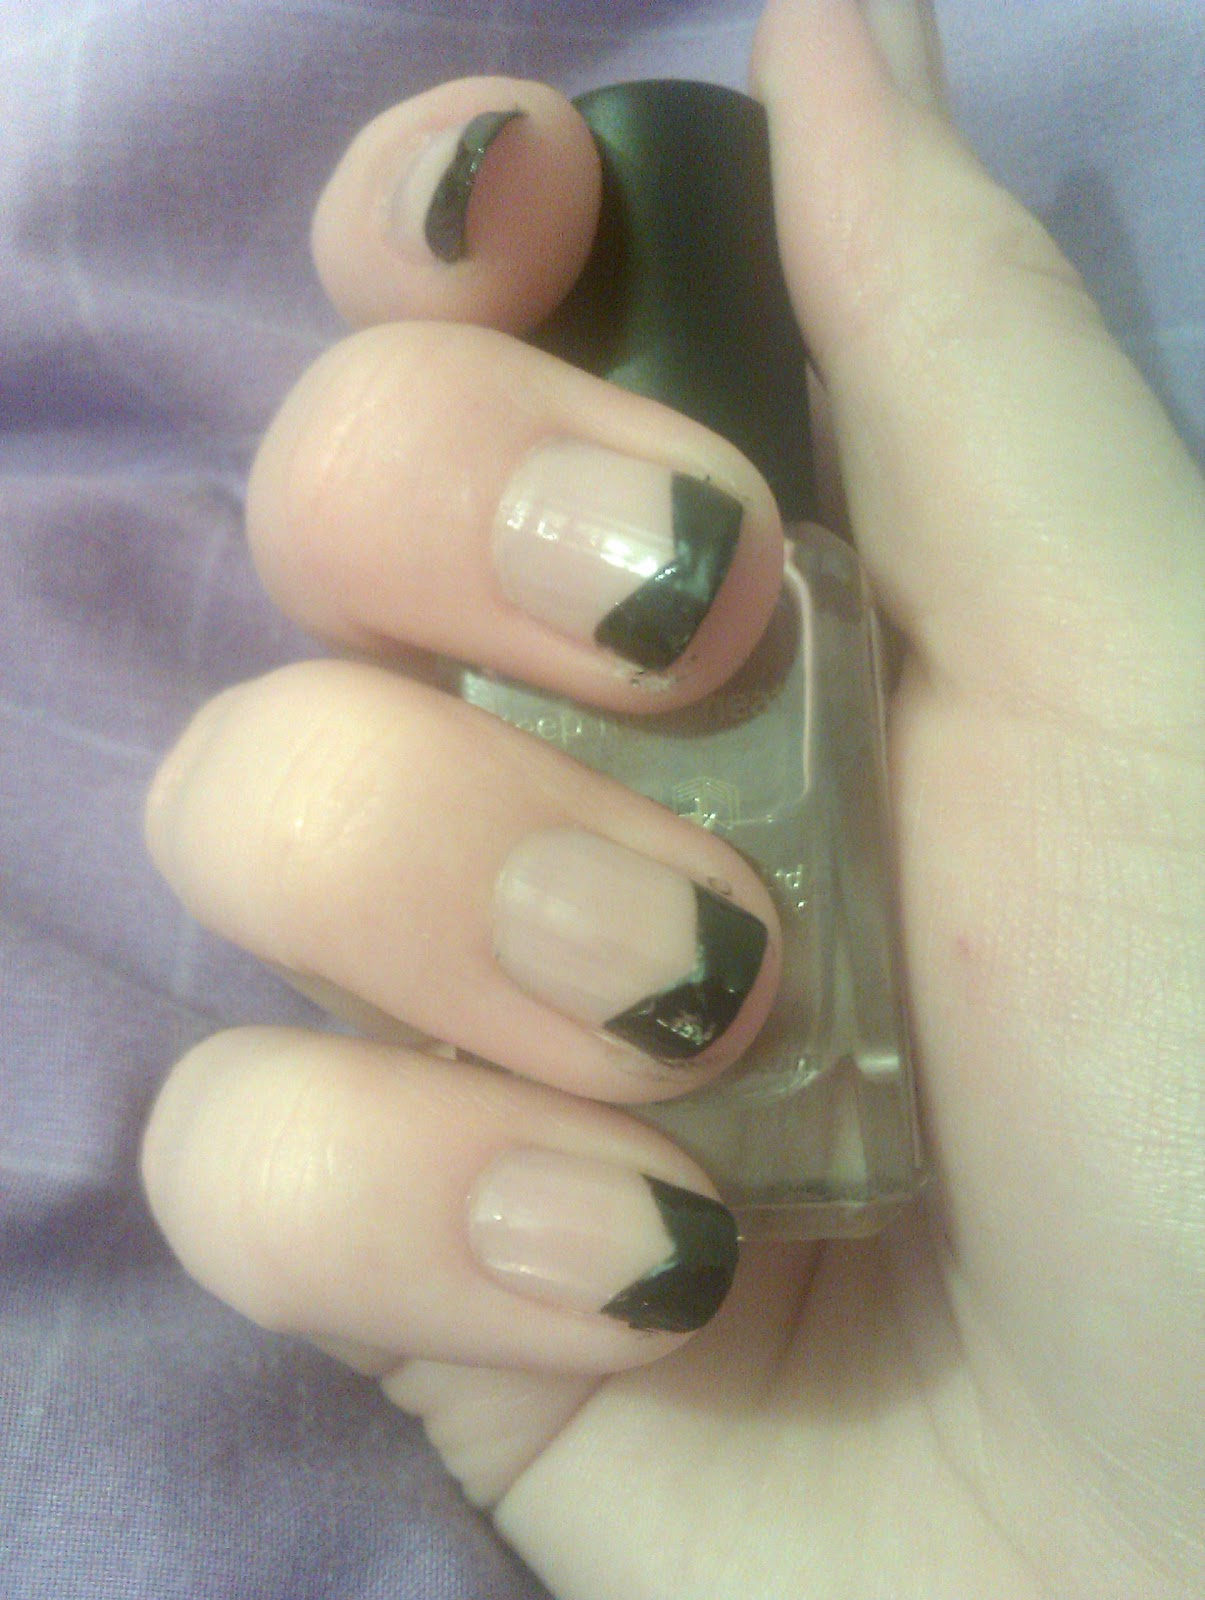 Kerrys creative nails black french tips with a twist its so easy to get this look and i think its quite classy if i do say so myself solutioingenieria Images